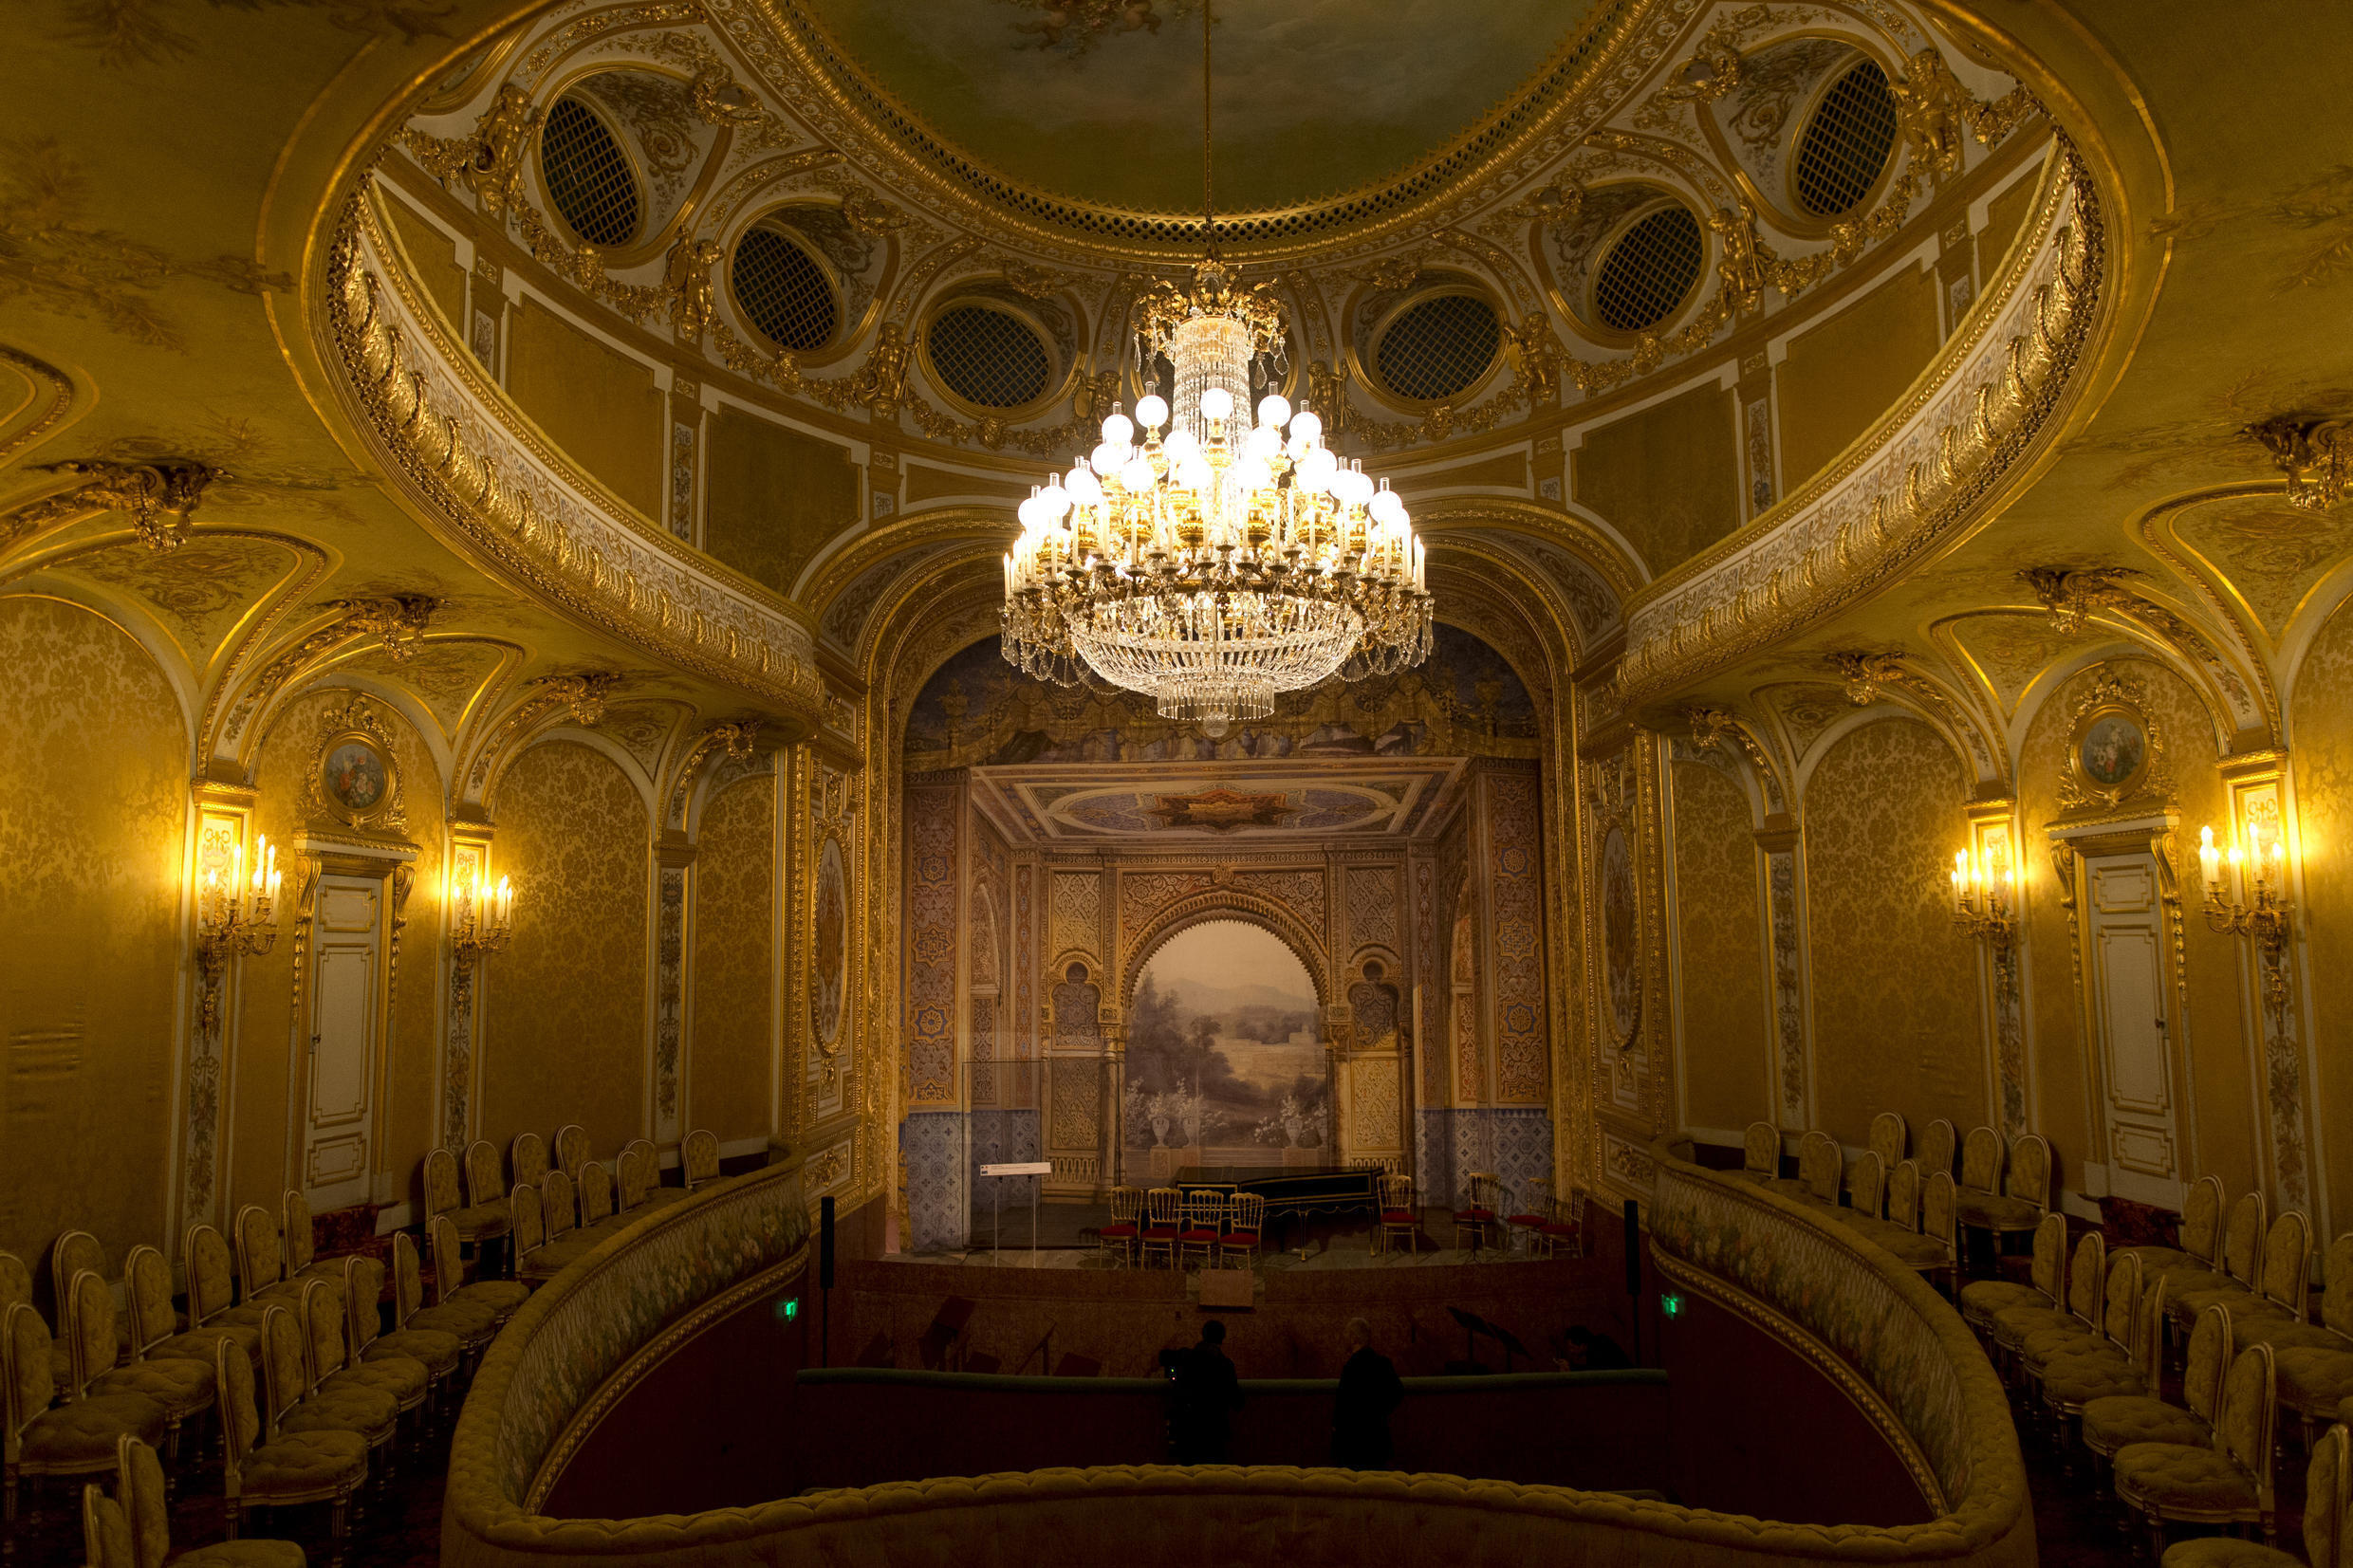 The Fontainebleau castle Imperial Theatre has been restored thanks to a gift by UAE ruler Cheikh Khalifa bin Zayed al Nahyan